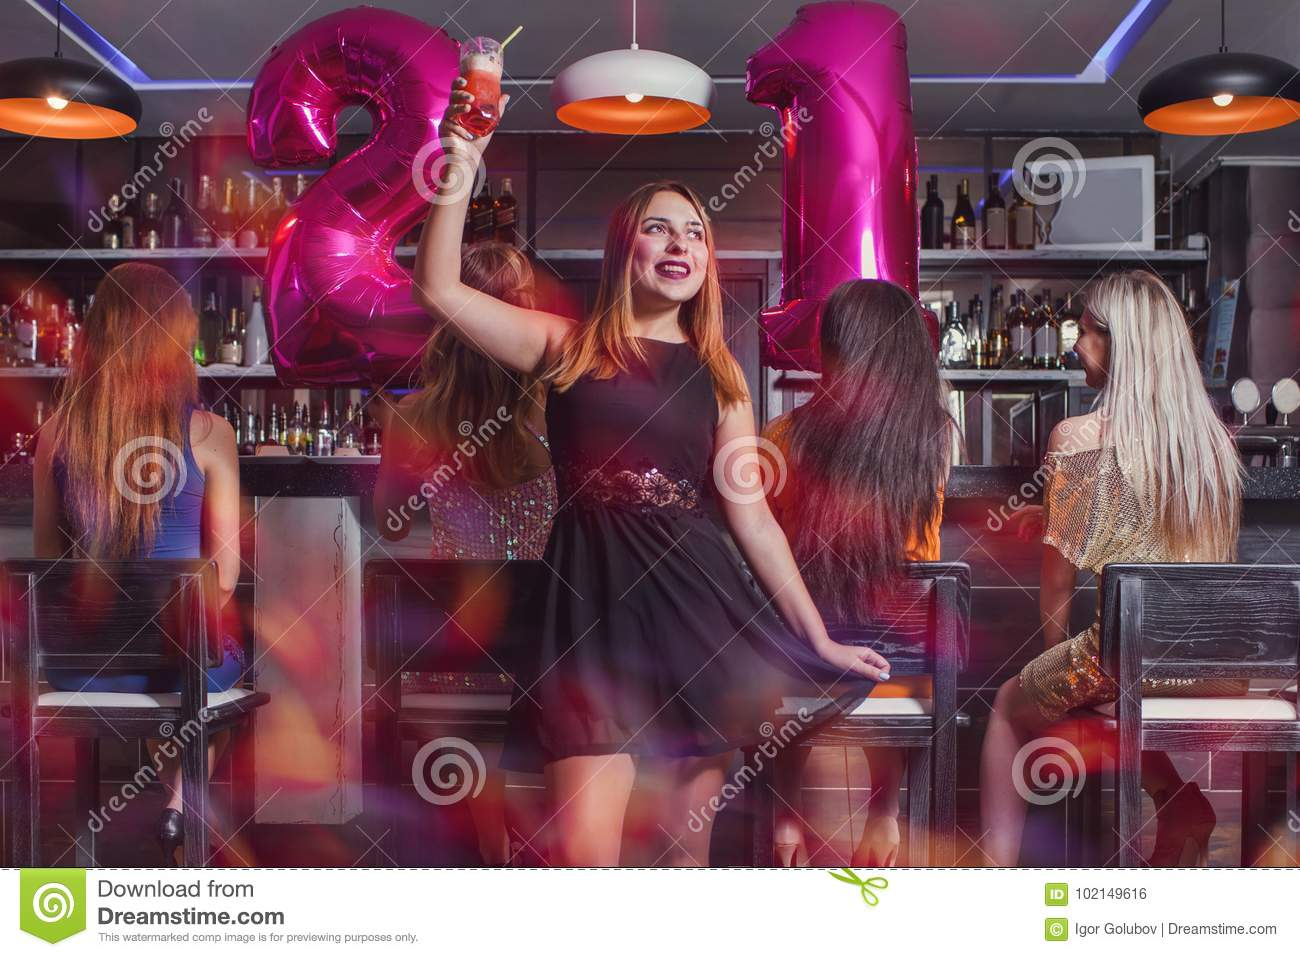 Young woman 21 birthday party in night club